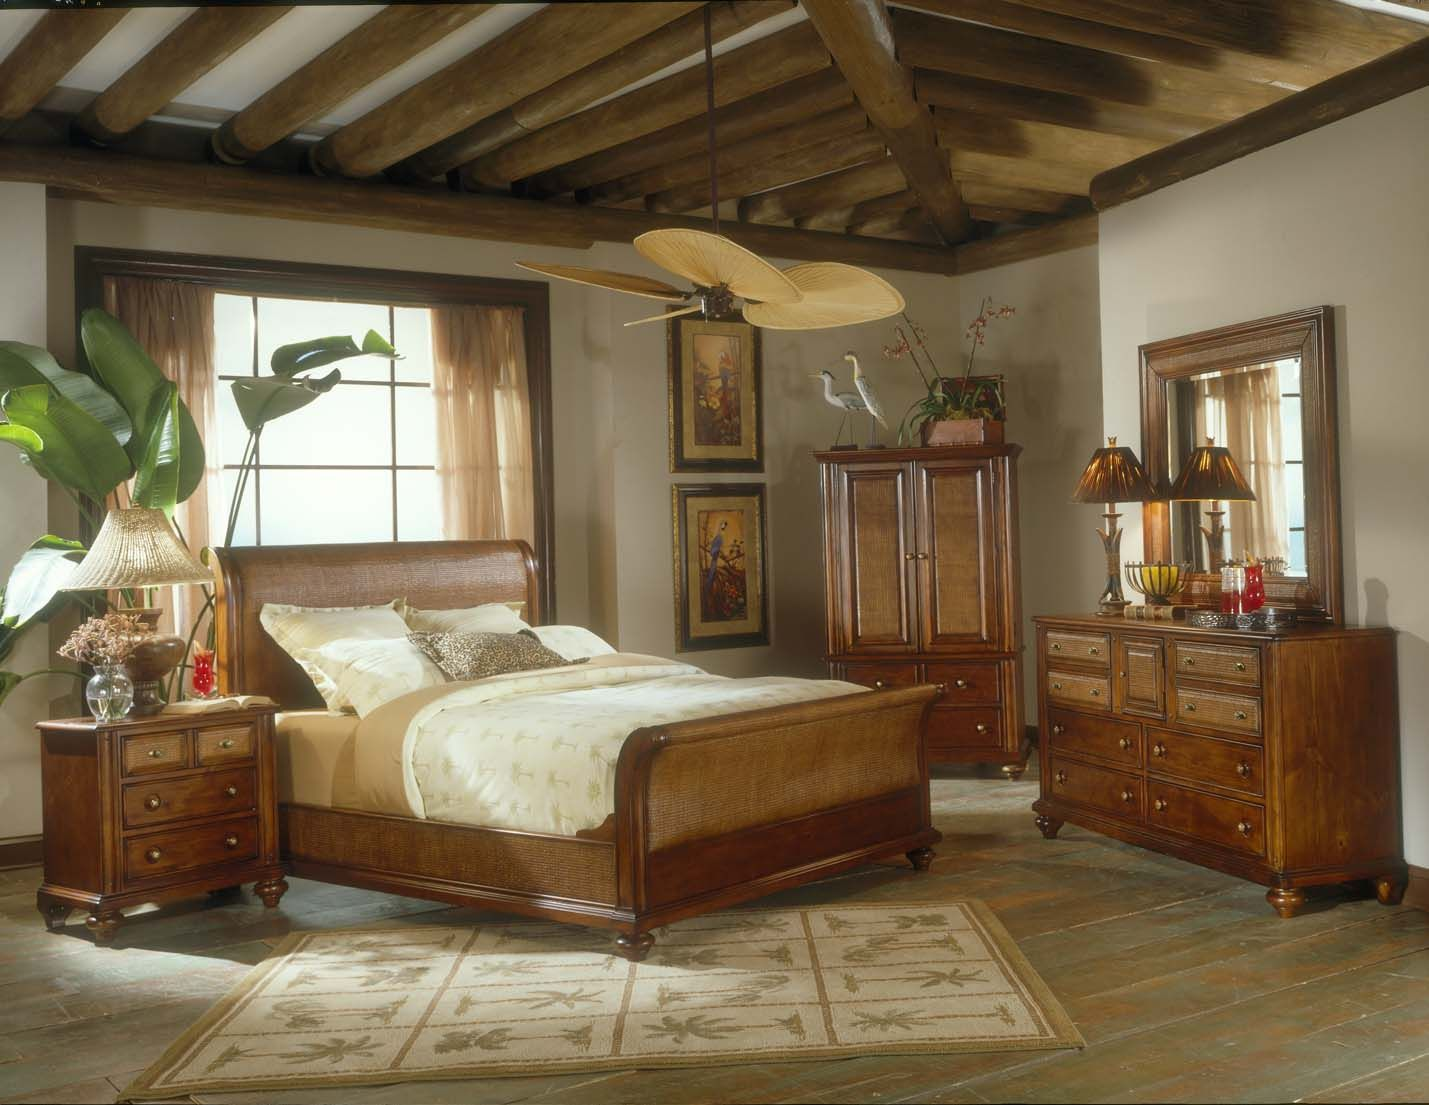 Wohndesign schlafzimmermöbel beautiful island style bedroom furniture prepossessing inspirational